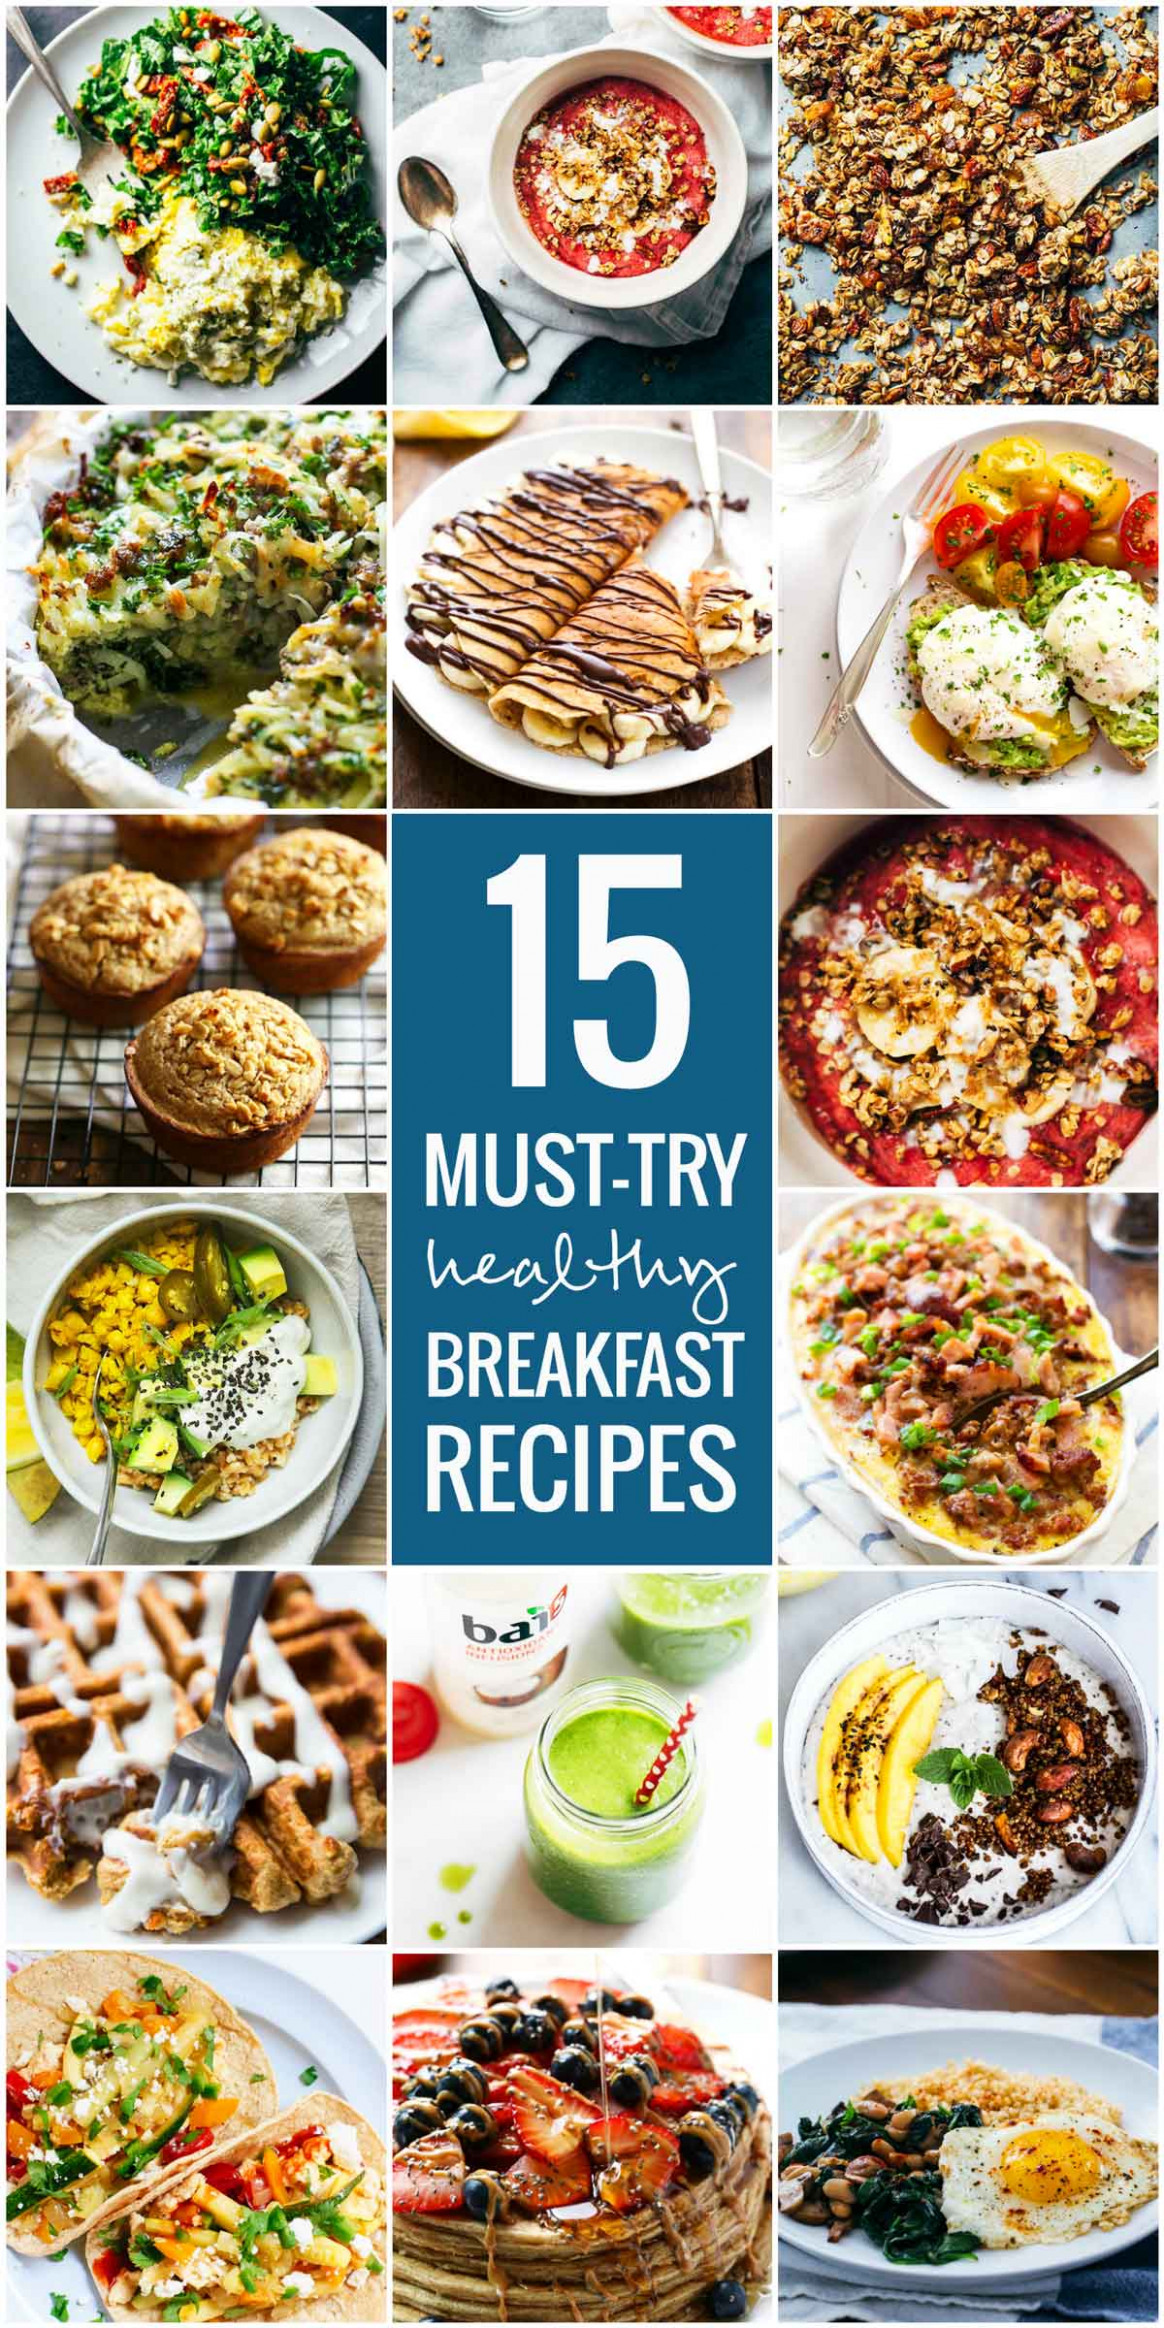 15 Must-Try Healthy Breakfast Recipes - Pinch of Yum